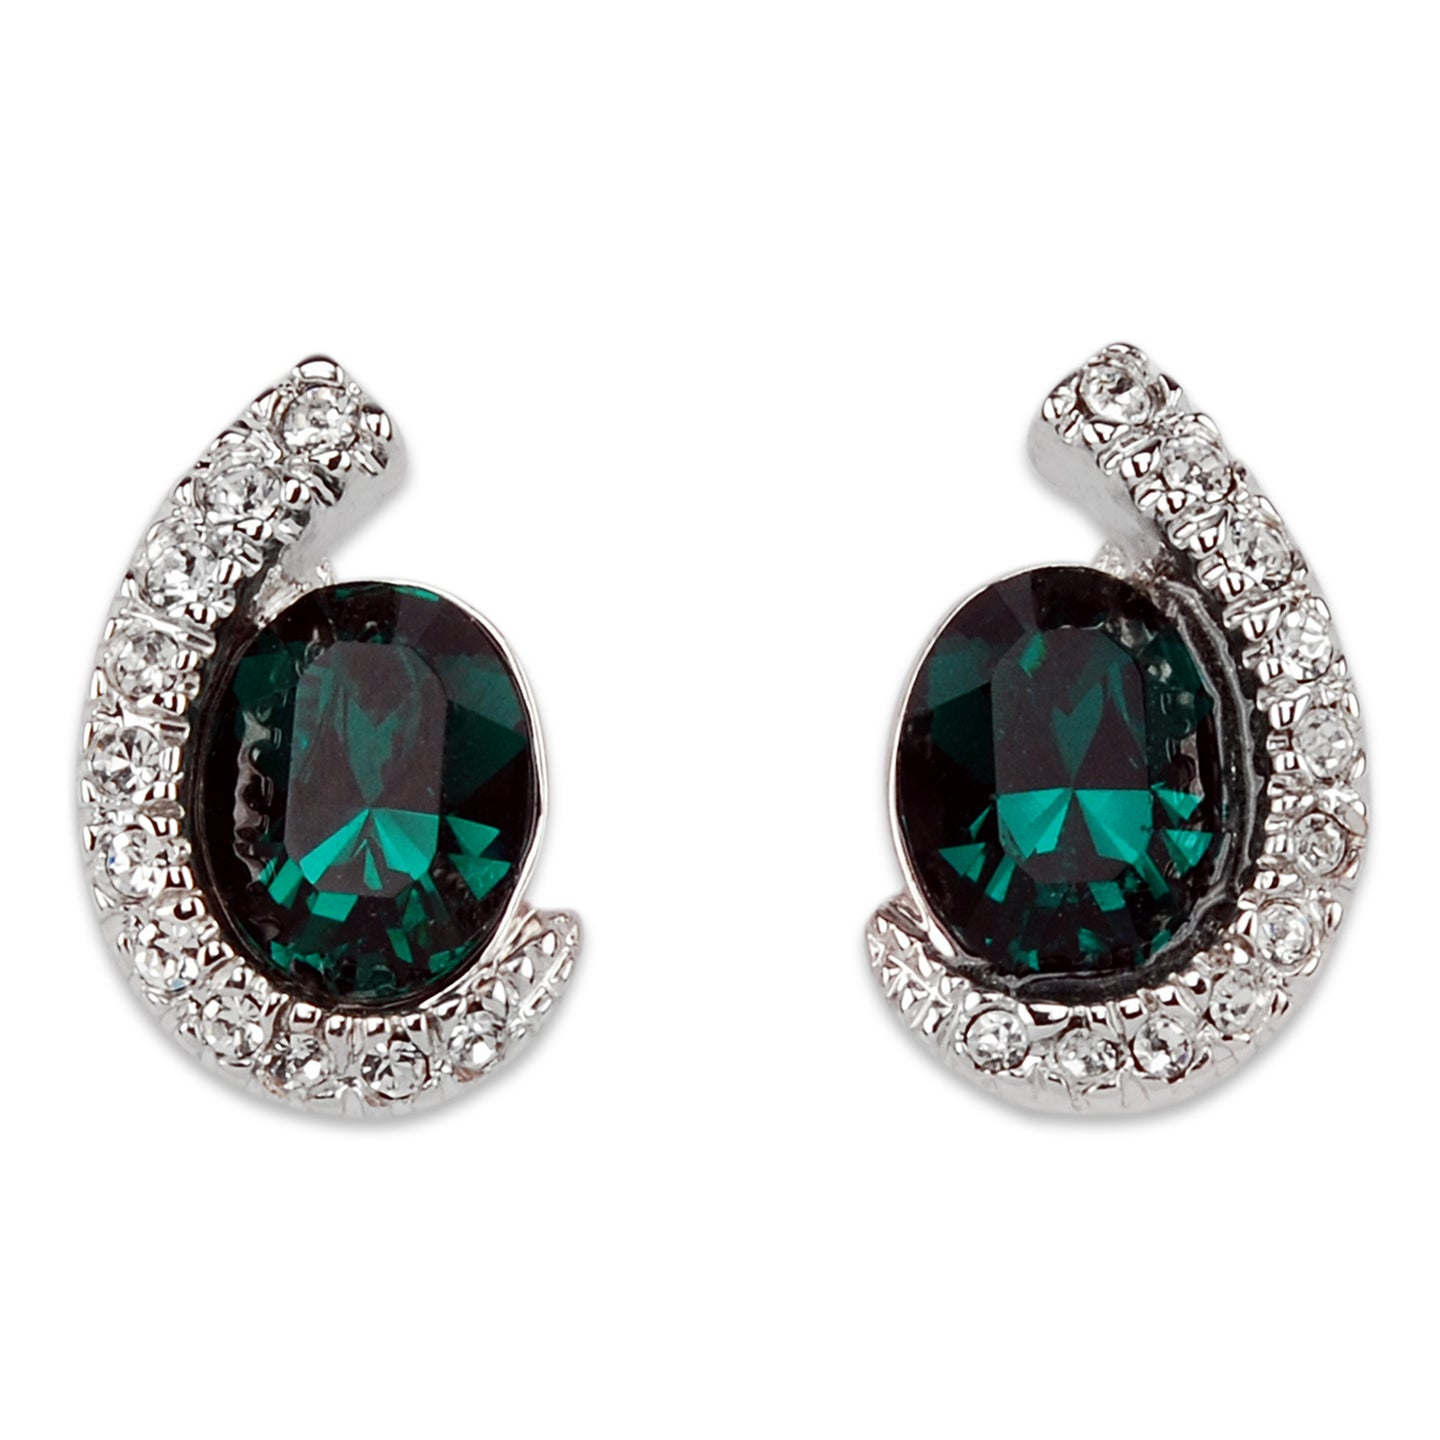 Emerald Elegance Crystal Earrings